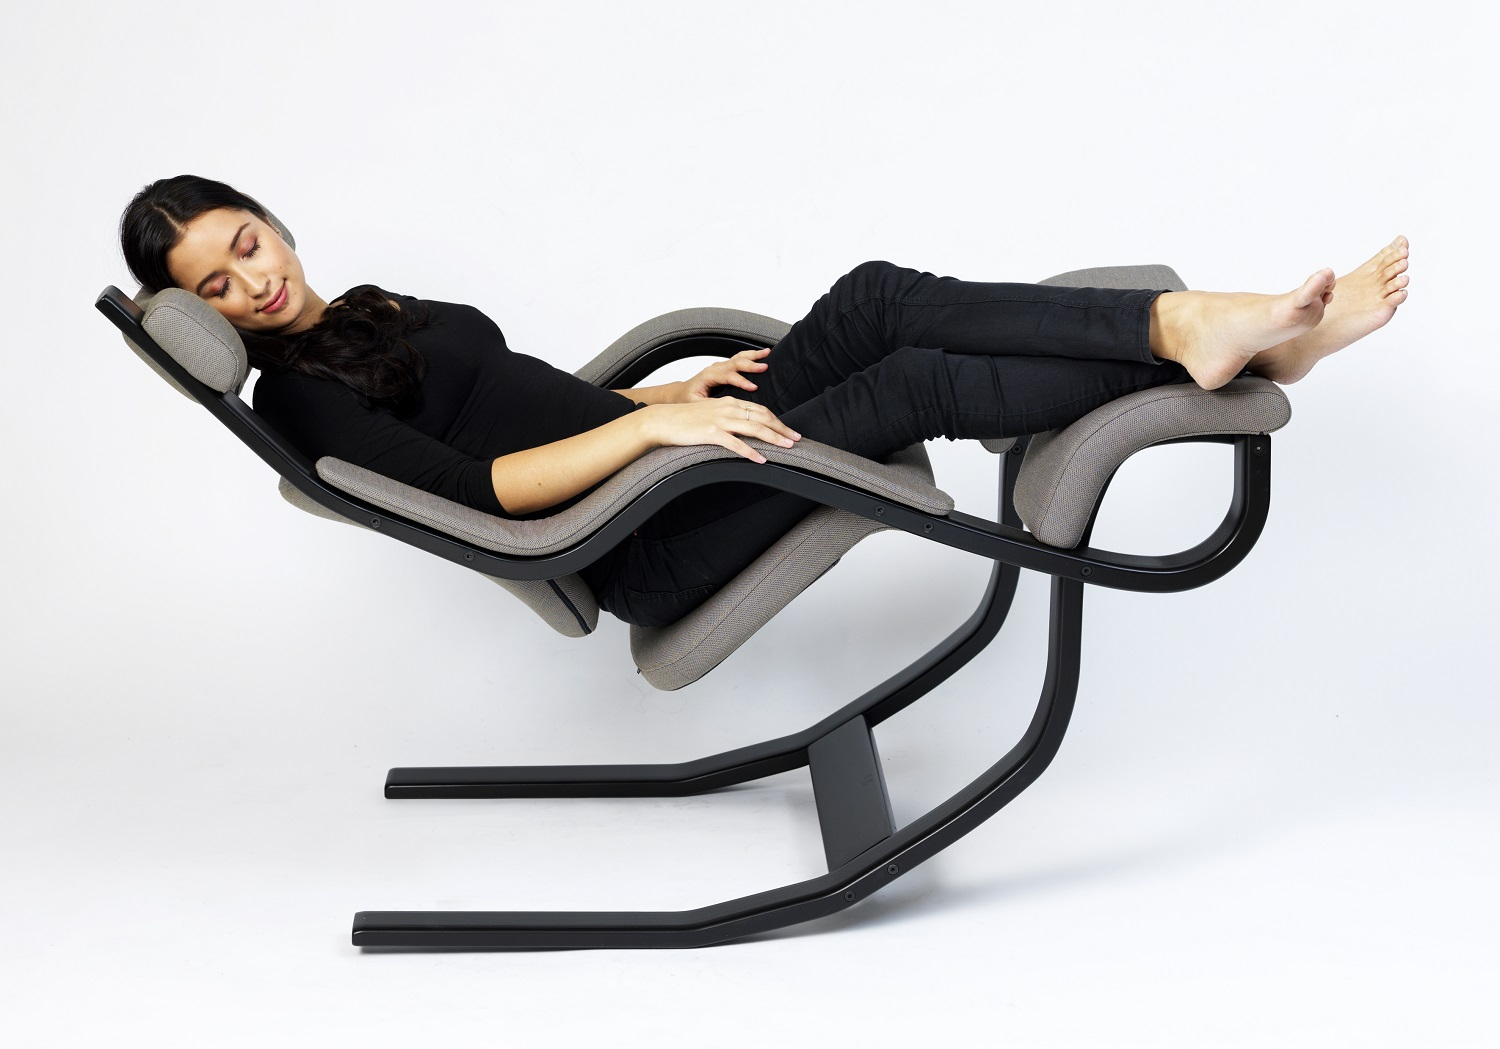 stokke gravity chair> OFF 10